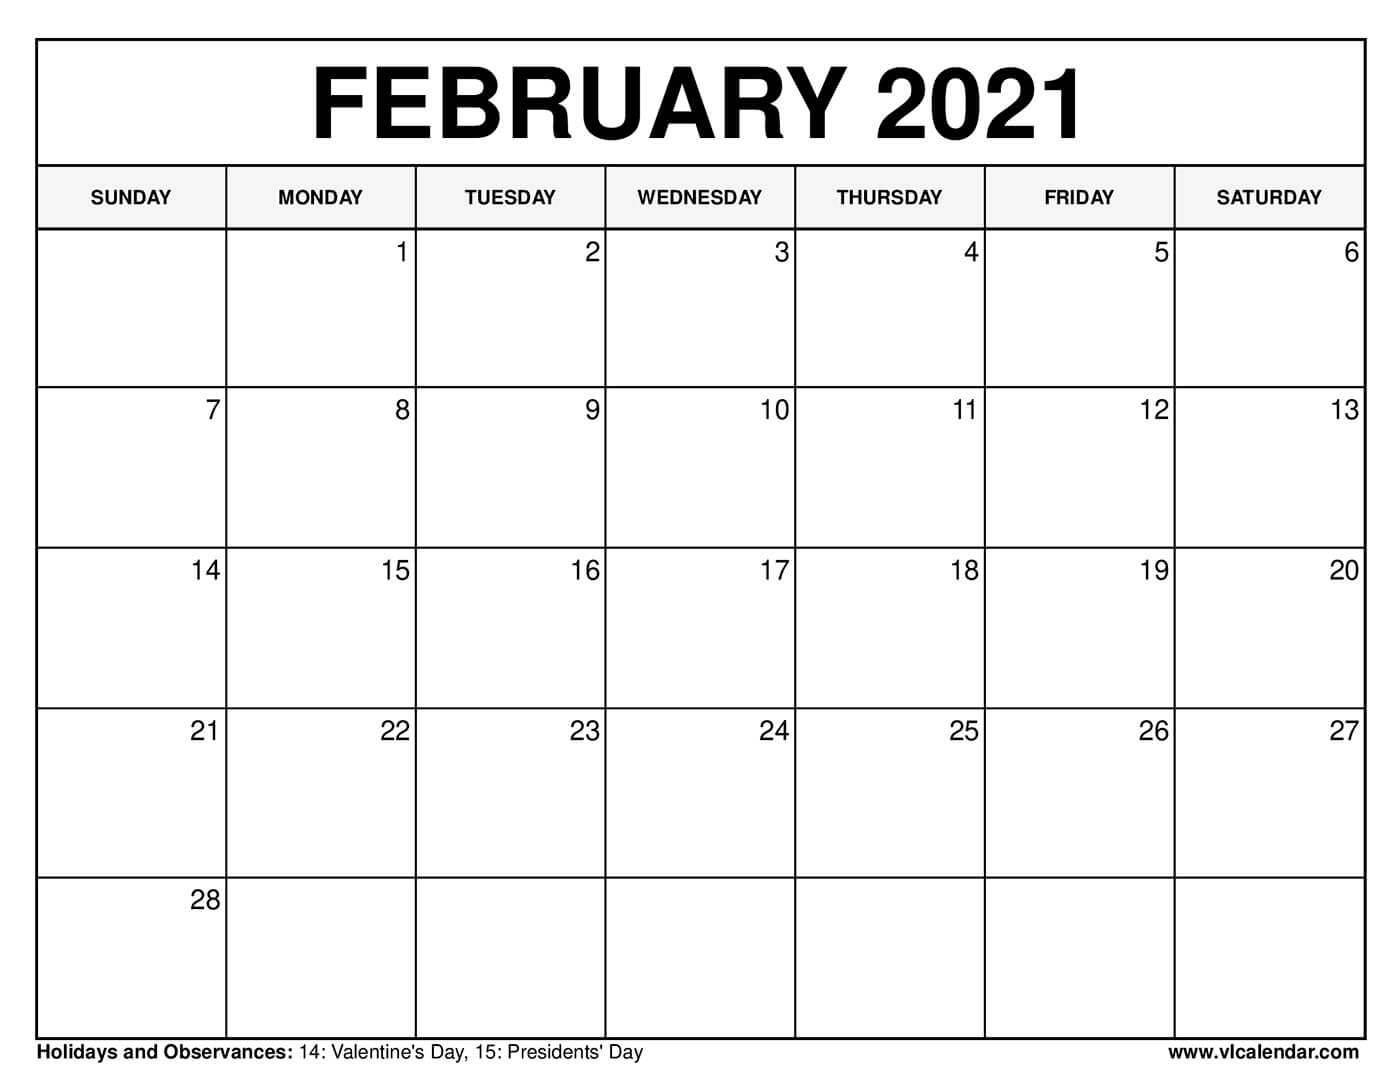 Free Great Calendar-2021 Printable Calendars With Time Slots